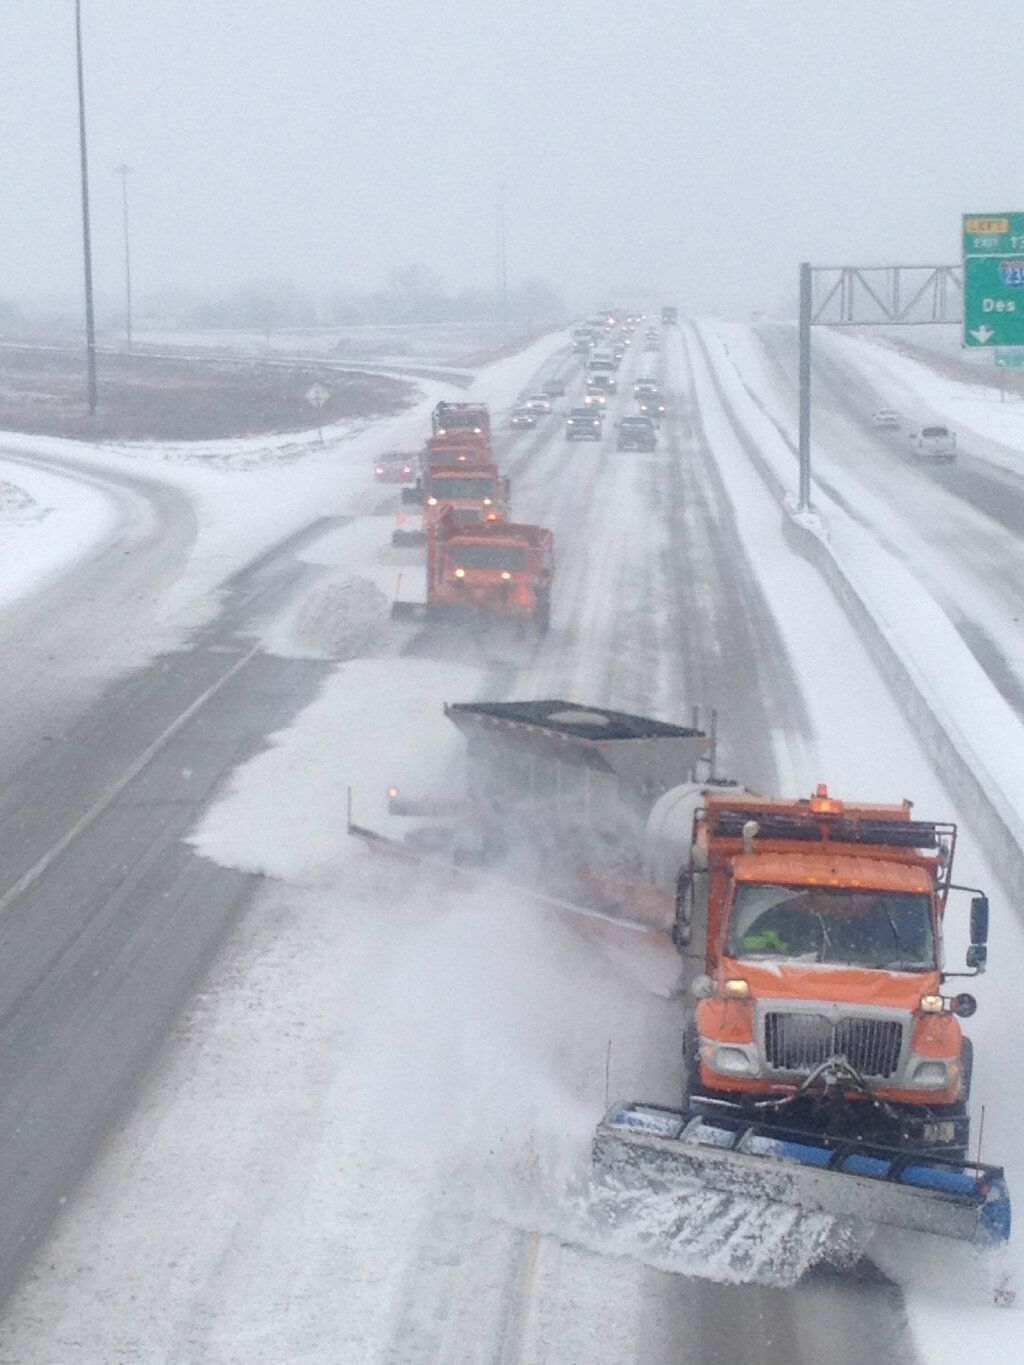 DOT Snowplows working the interstate.The best way to plow